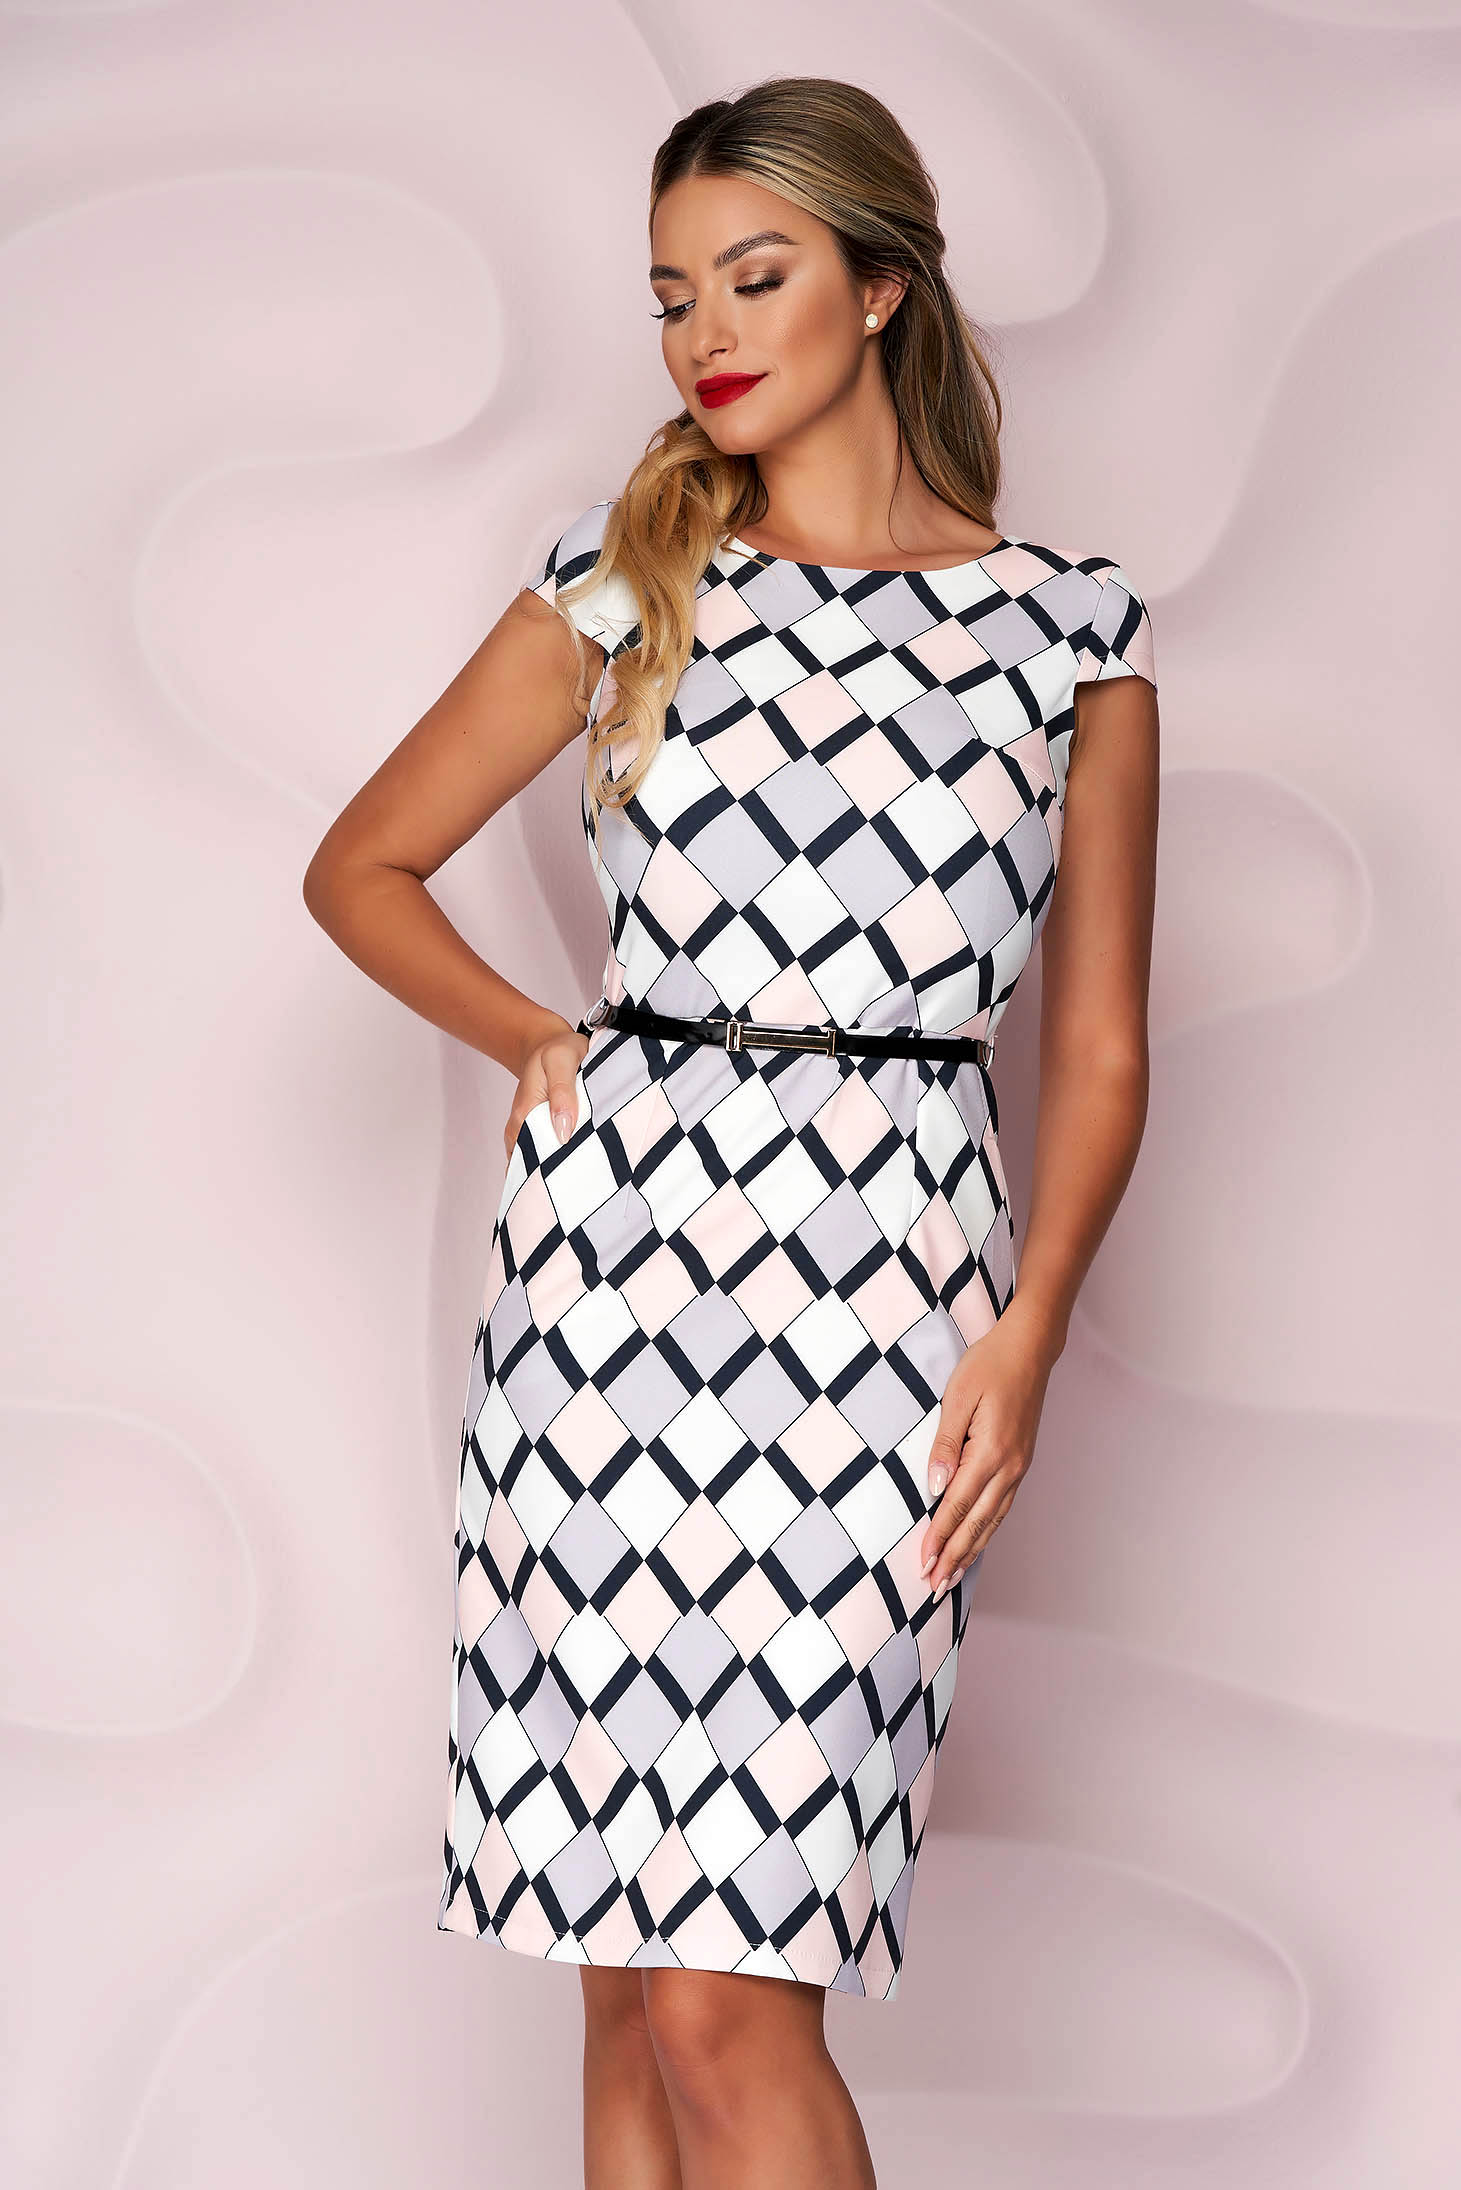 Dress pencil thin fabric casual slightly elastic fabric lateral pockets accessorized with belt